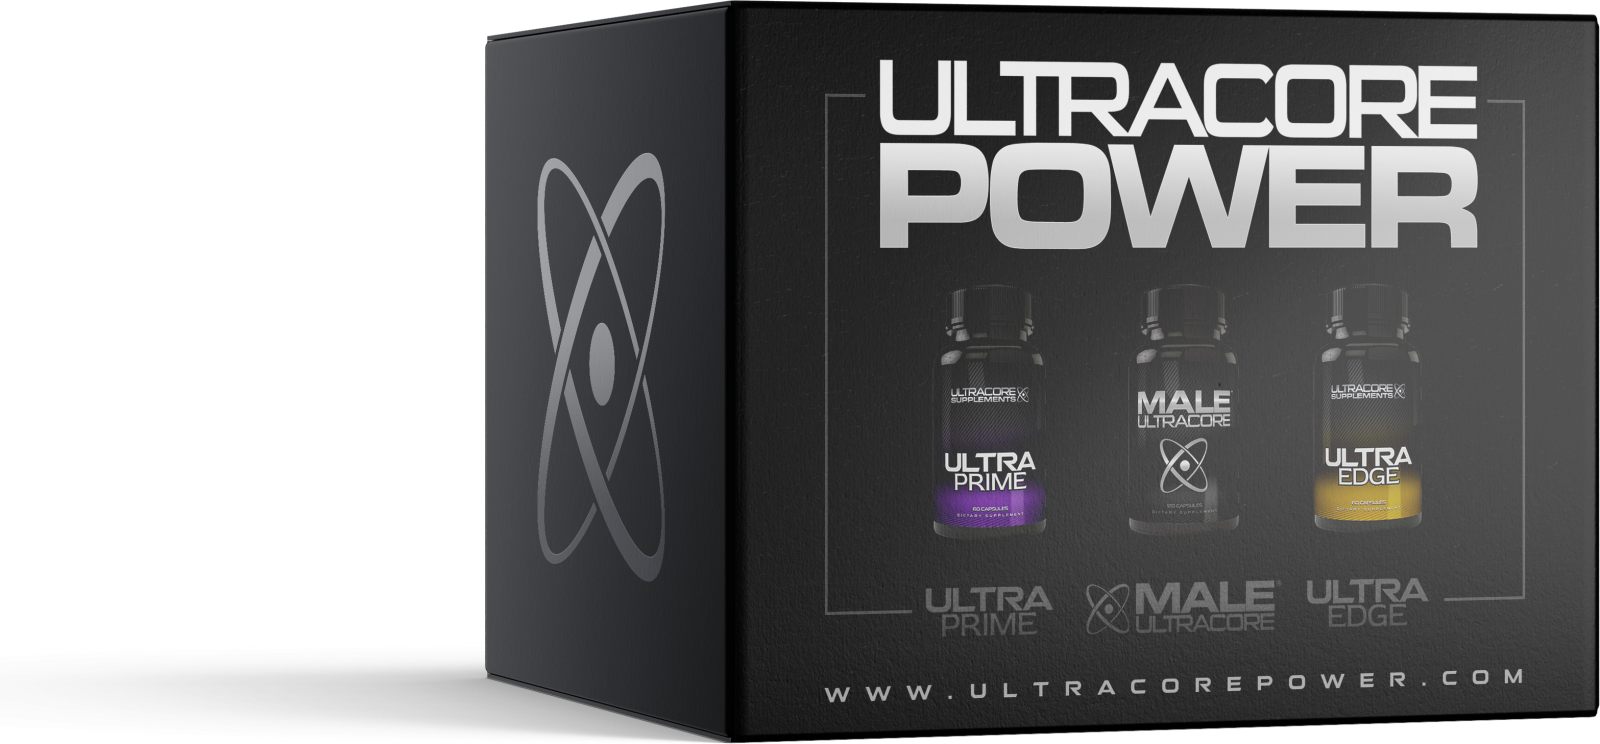 UltraCore Power Review – The Practical Choice